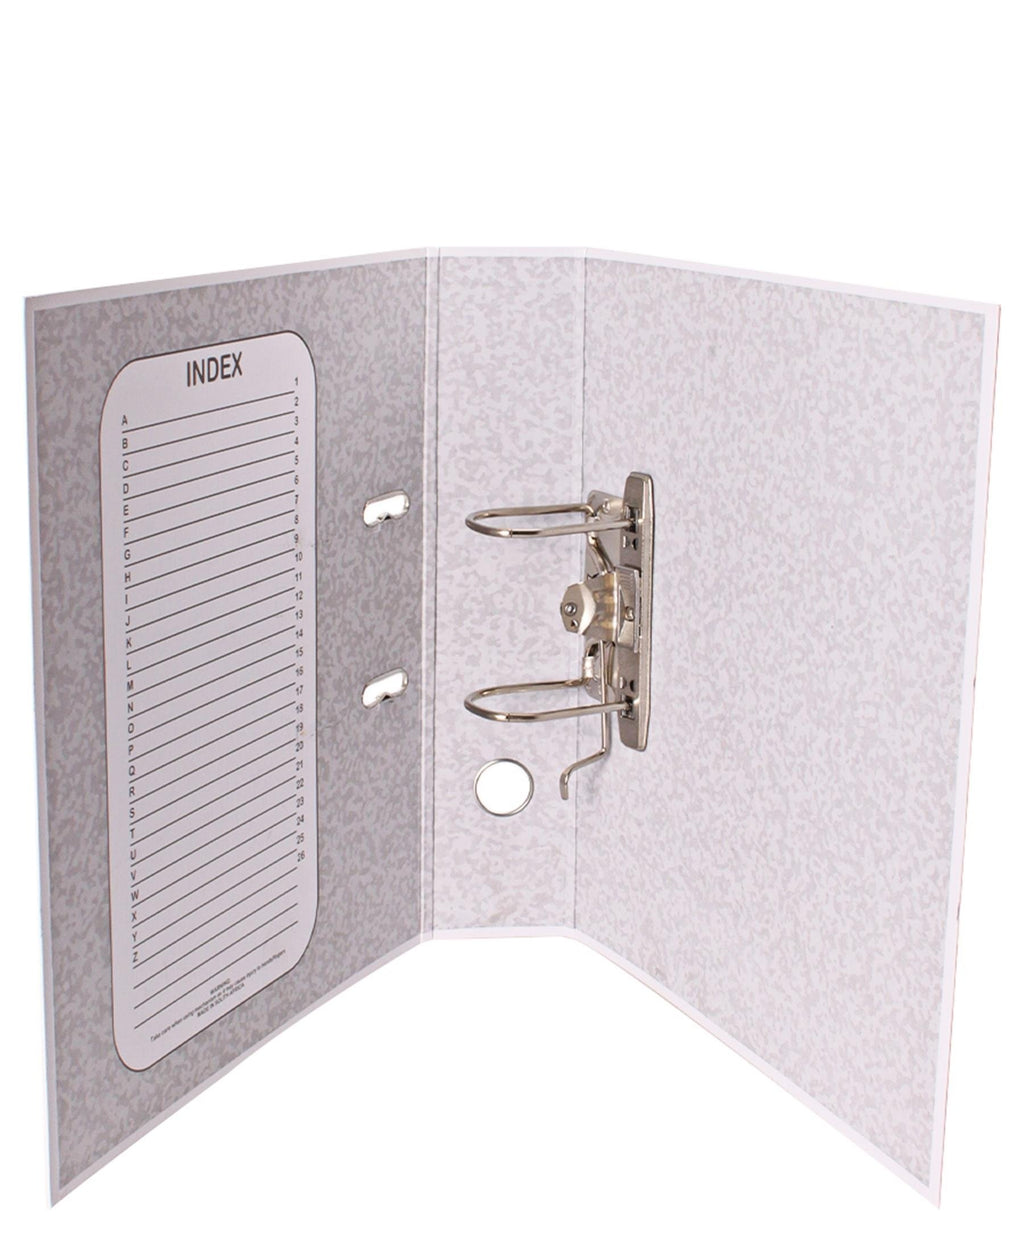 Marlin Lever Arch File - White